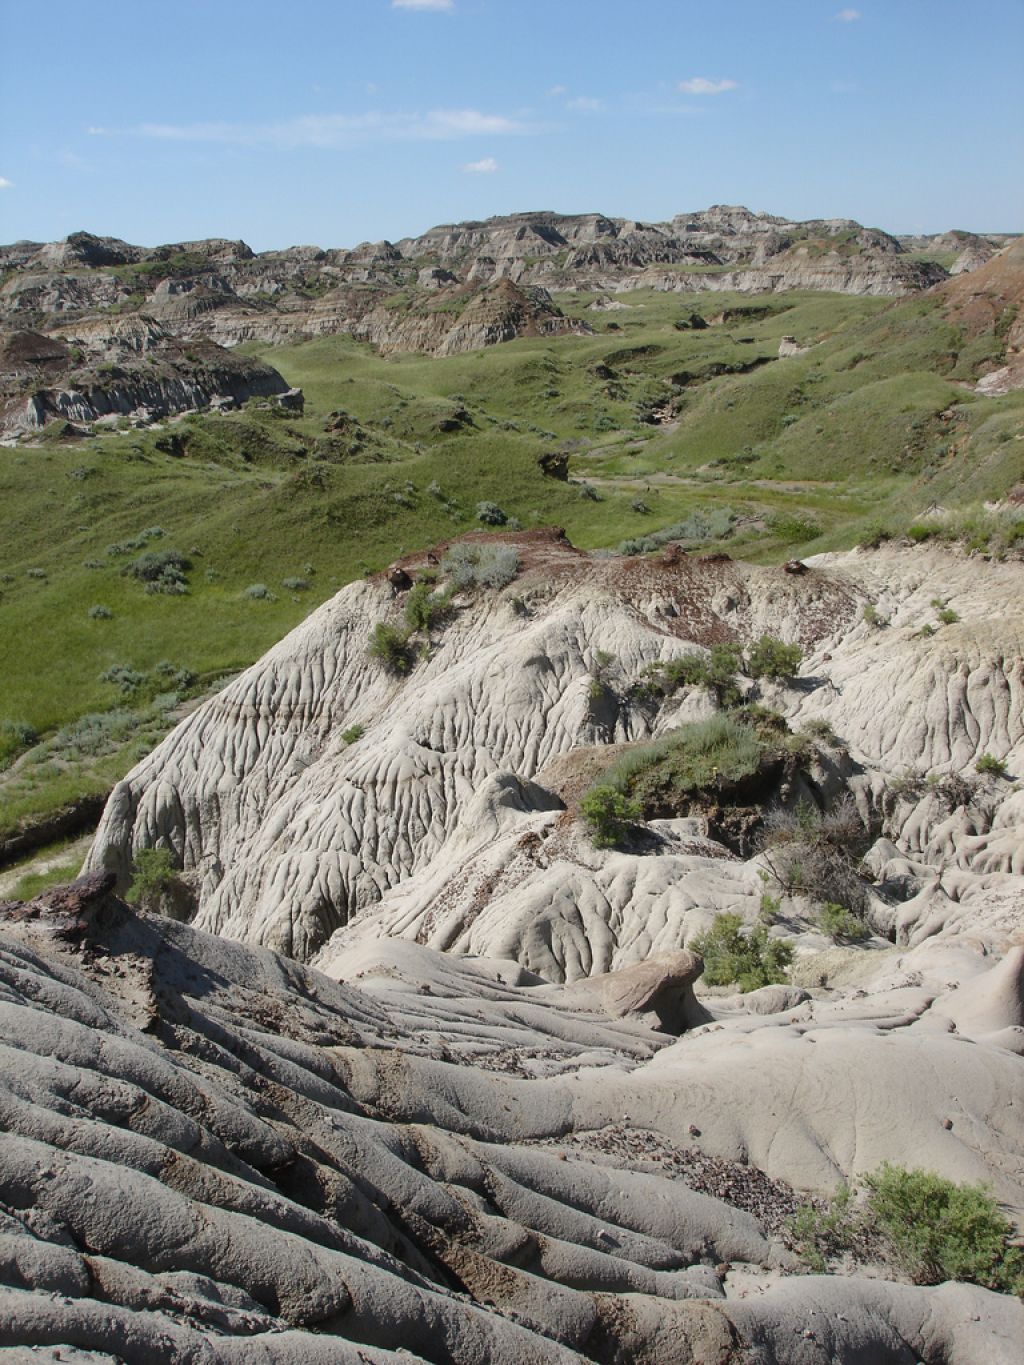 dinosaur provincial park11 Dinosaur Provincial Park   The Richest Dinosaur Fossil Site